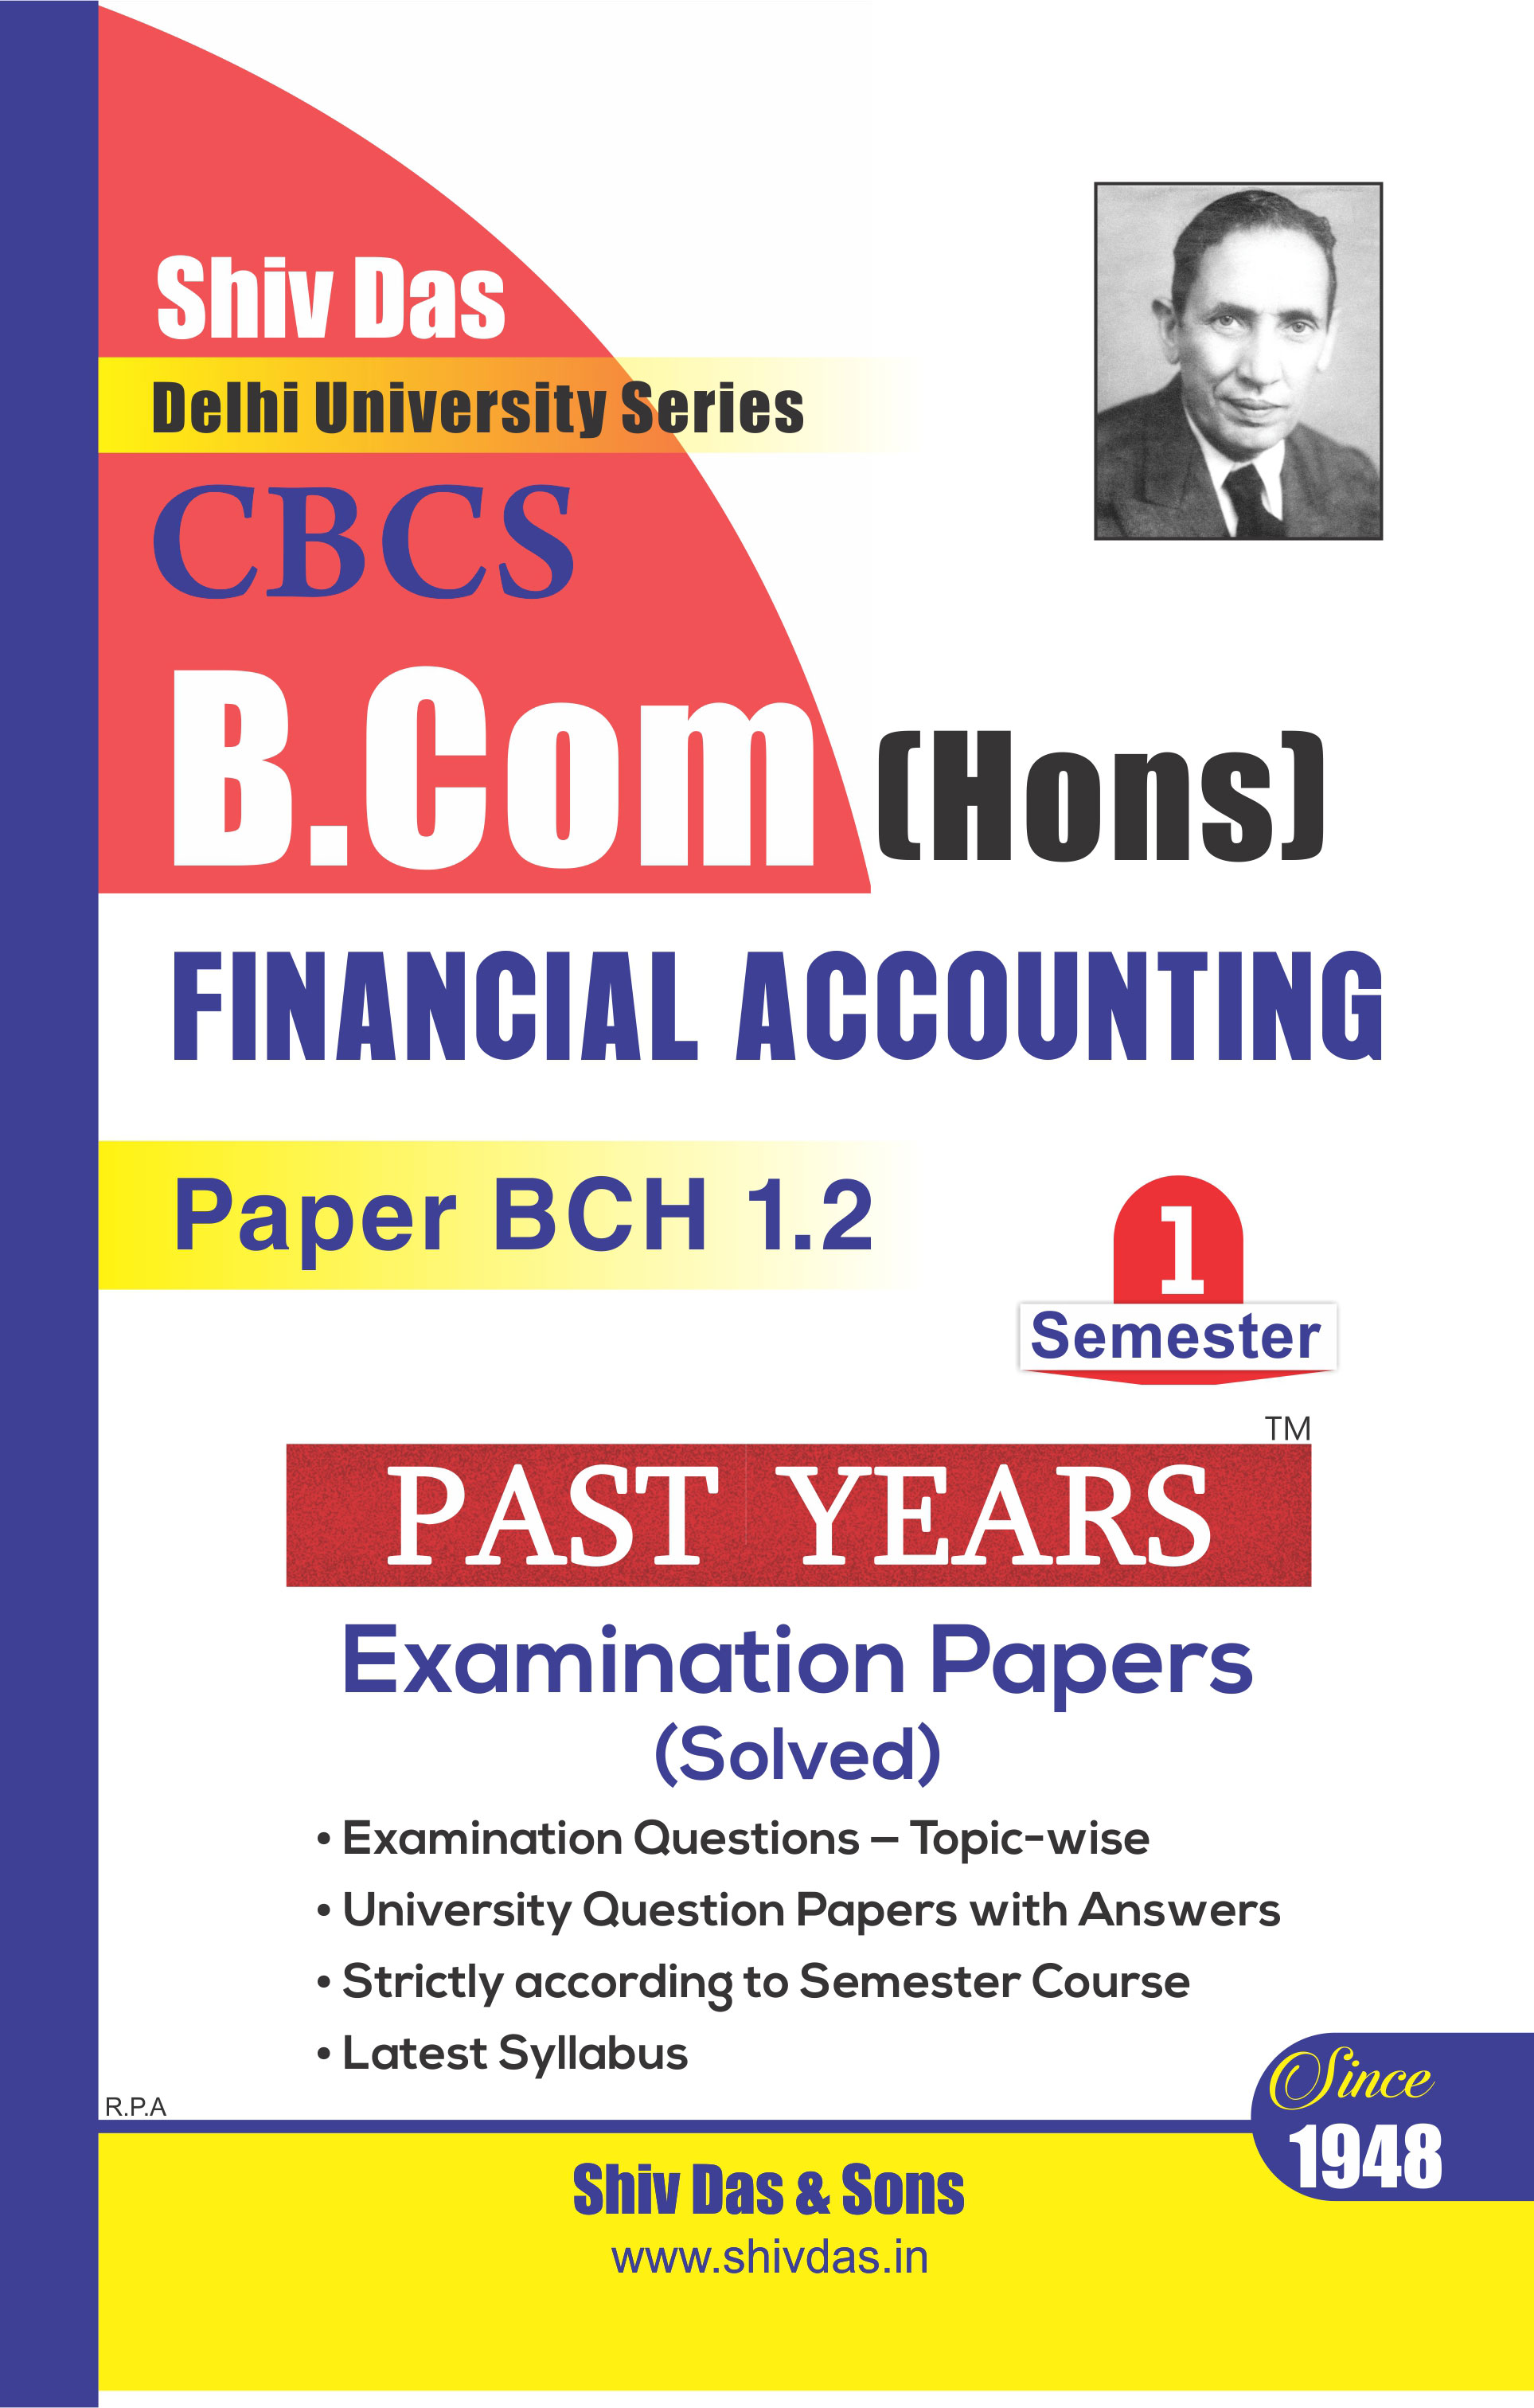 Financial Accounting for B.Com Hons. Semester- 1 for Delhi University by Shiv Das